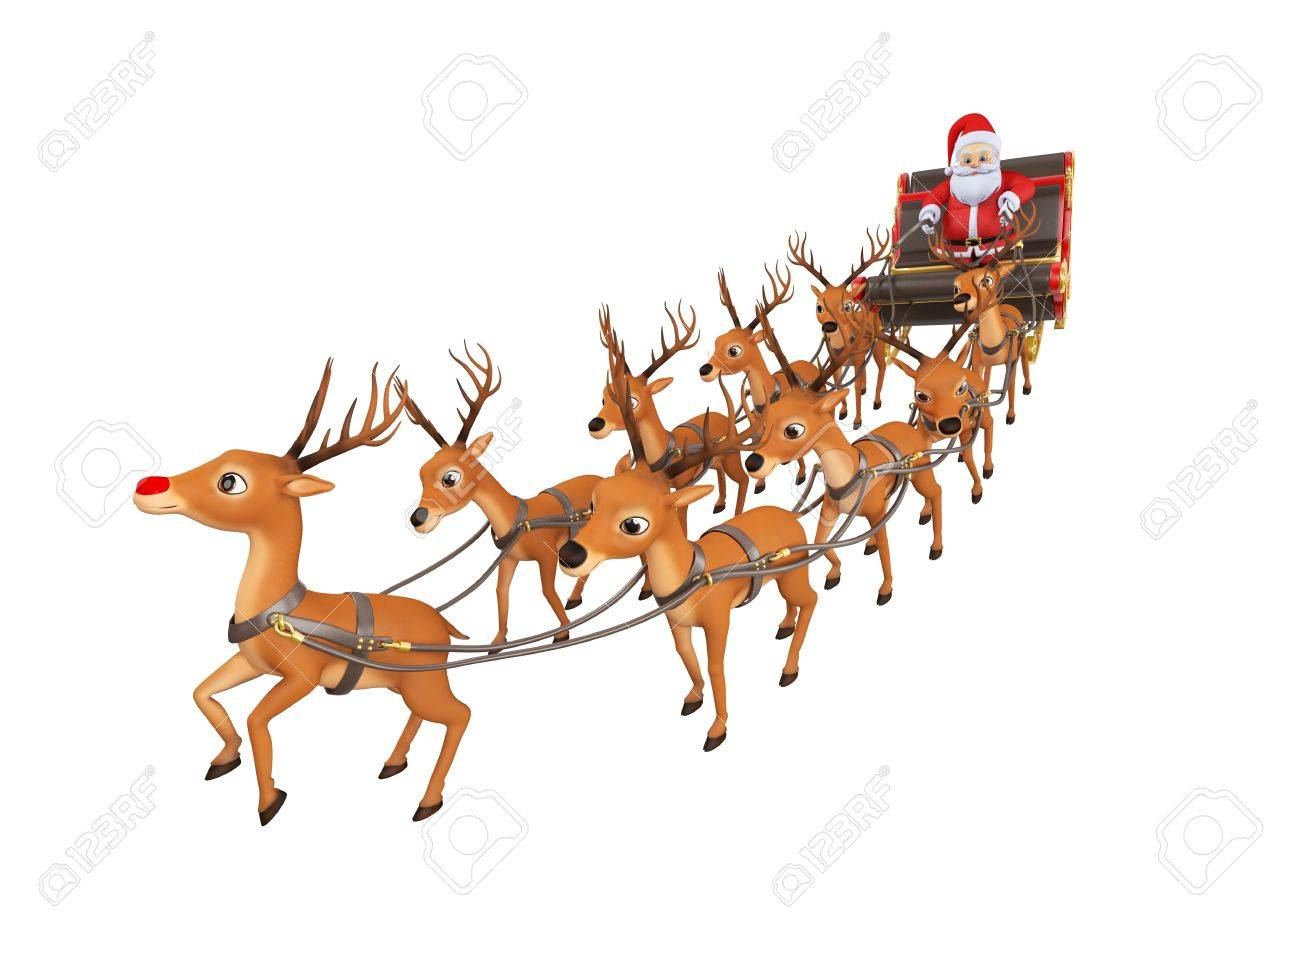 pictures of santa and his sleigh santa and his sleigh pictures free download best santa 381